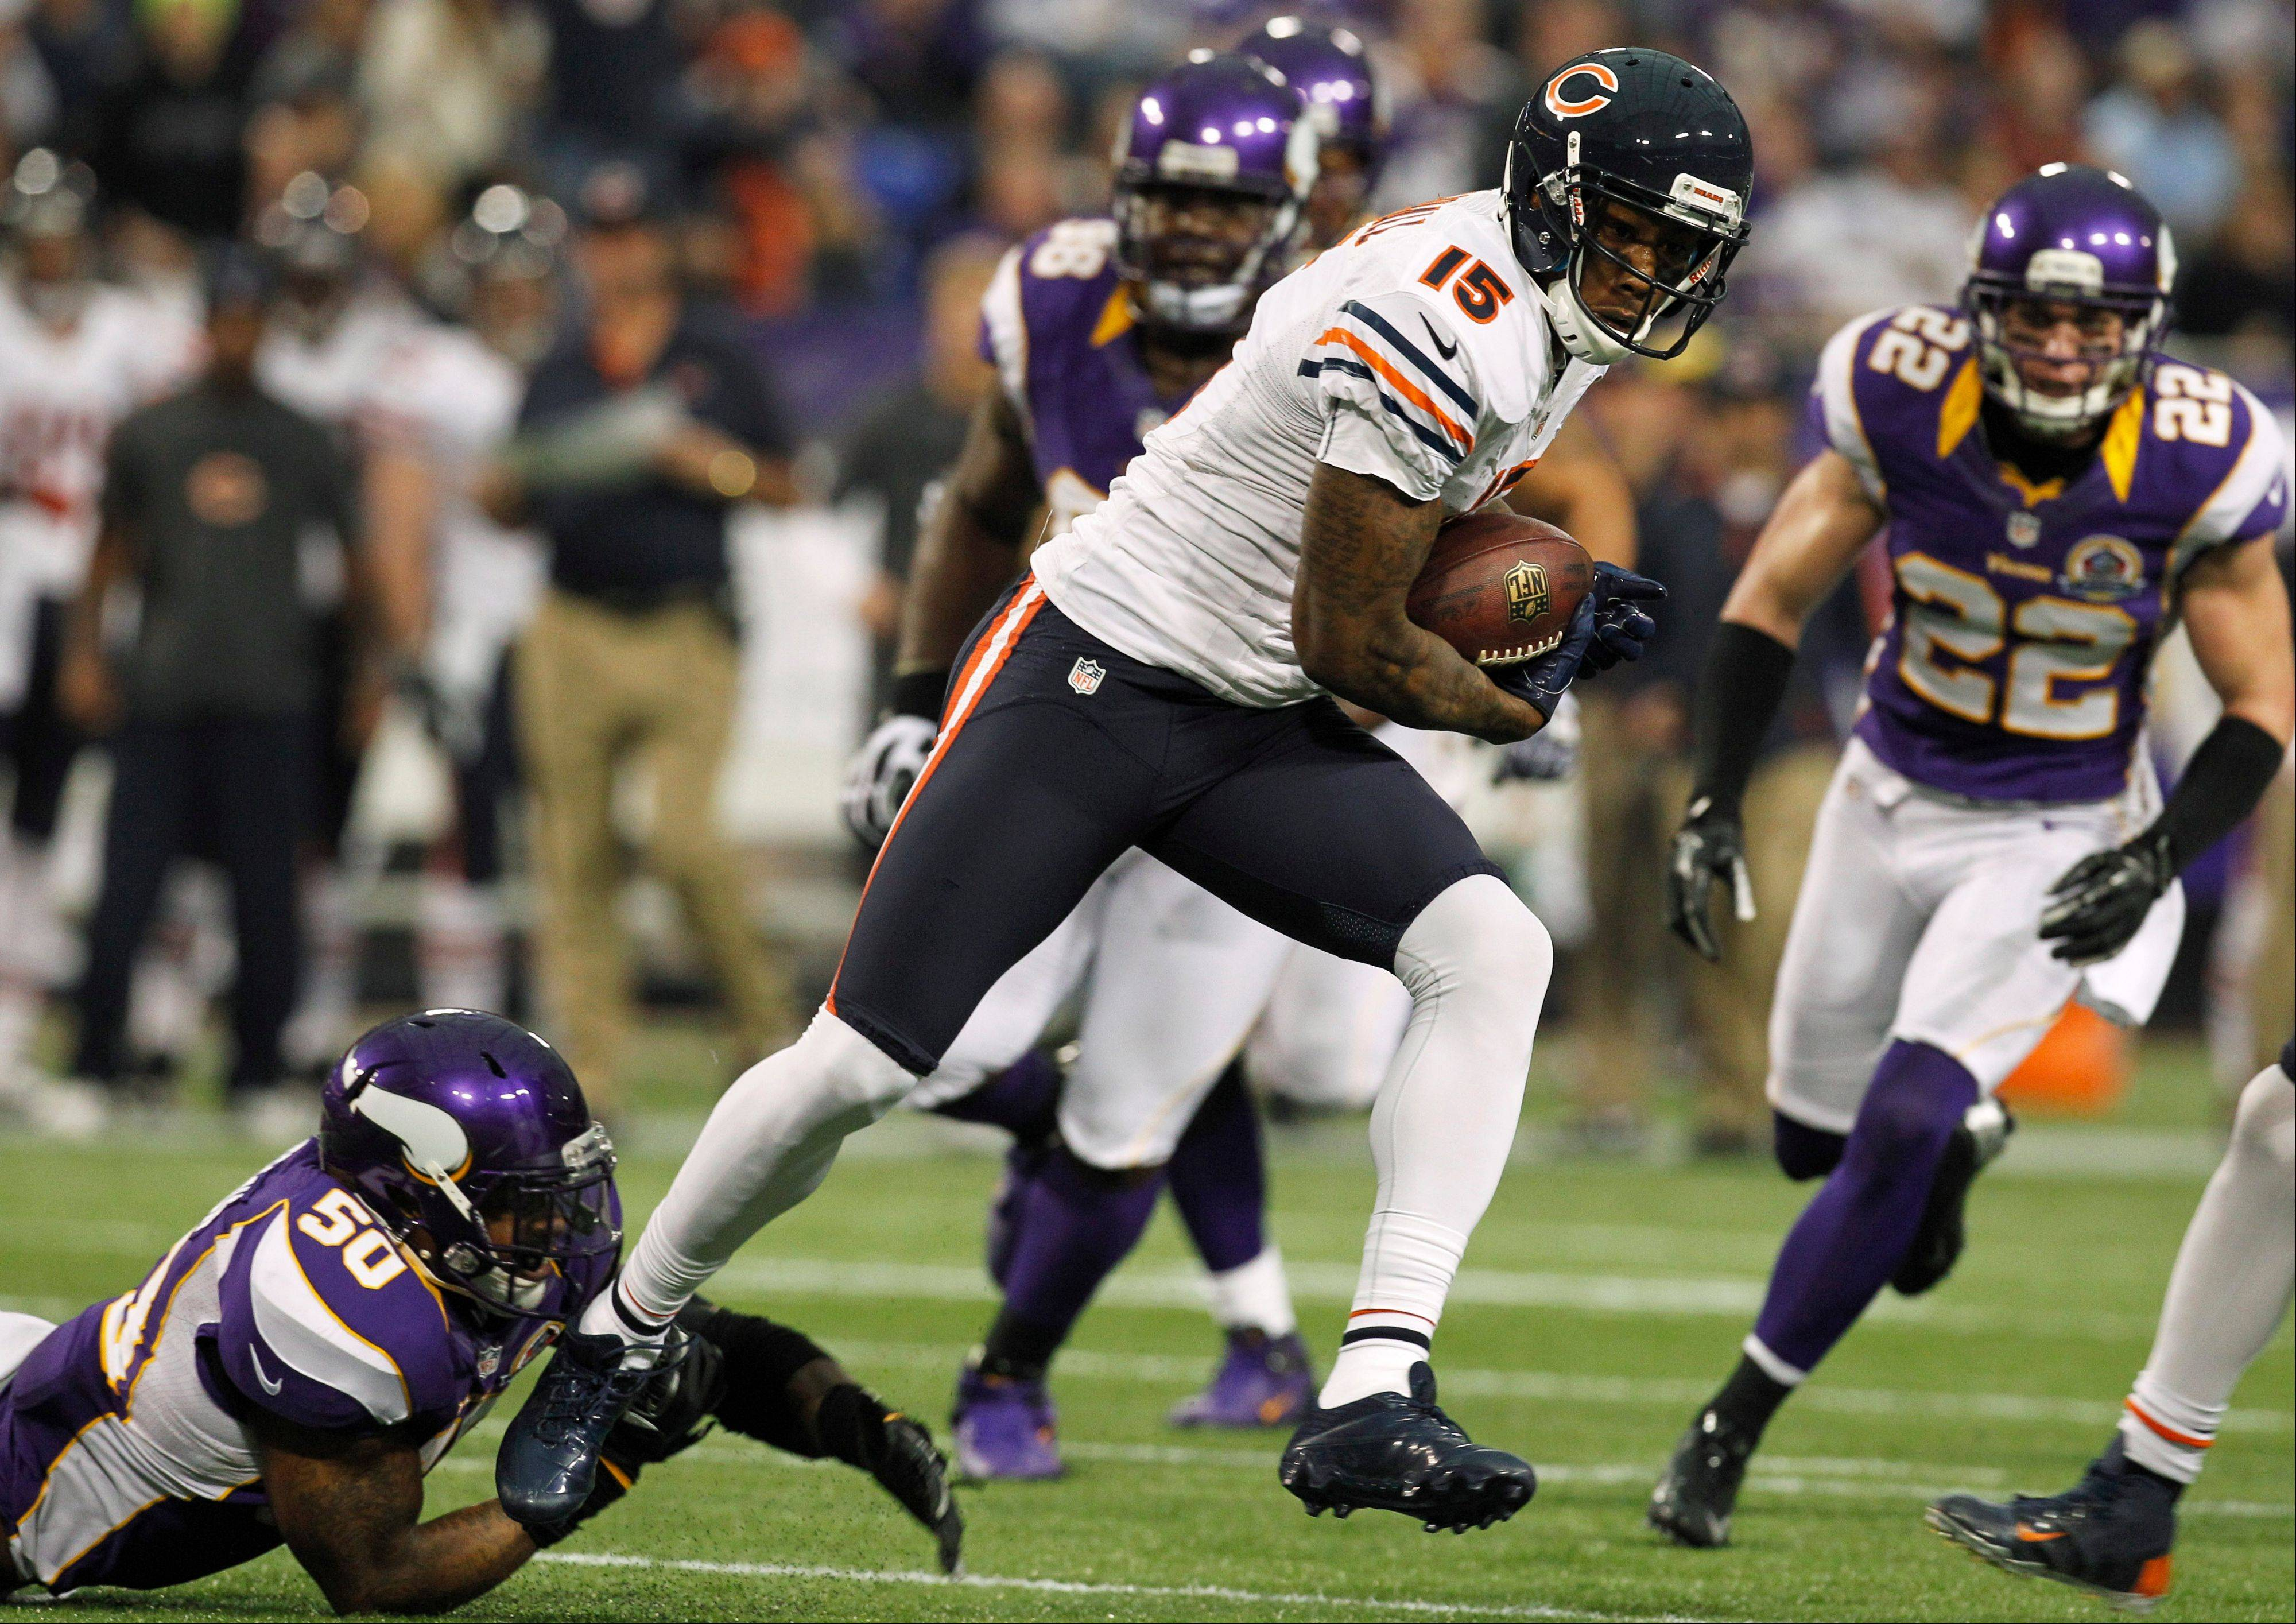 Chicago Bears wide receiver Brandon Marshall tries to break a tackle by Minnesota Vikings linebacker Erin Henderson, left, after making a reception during the first half.